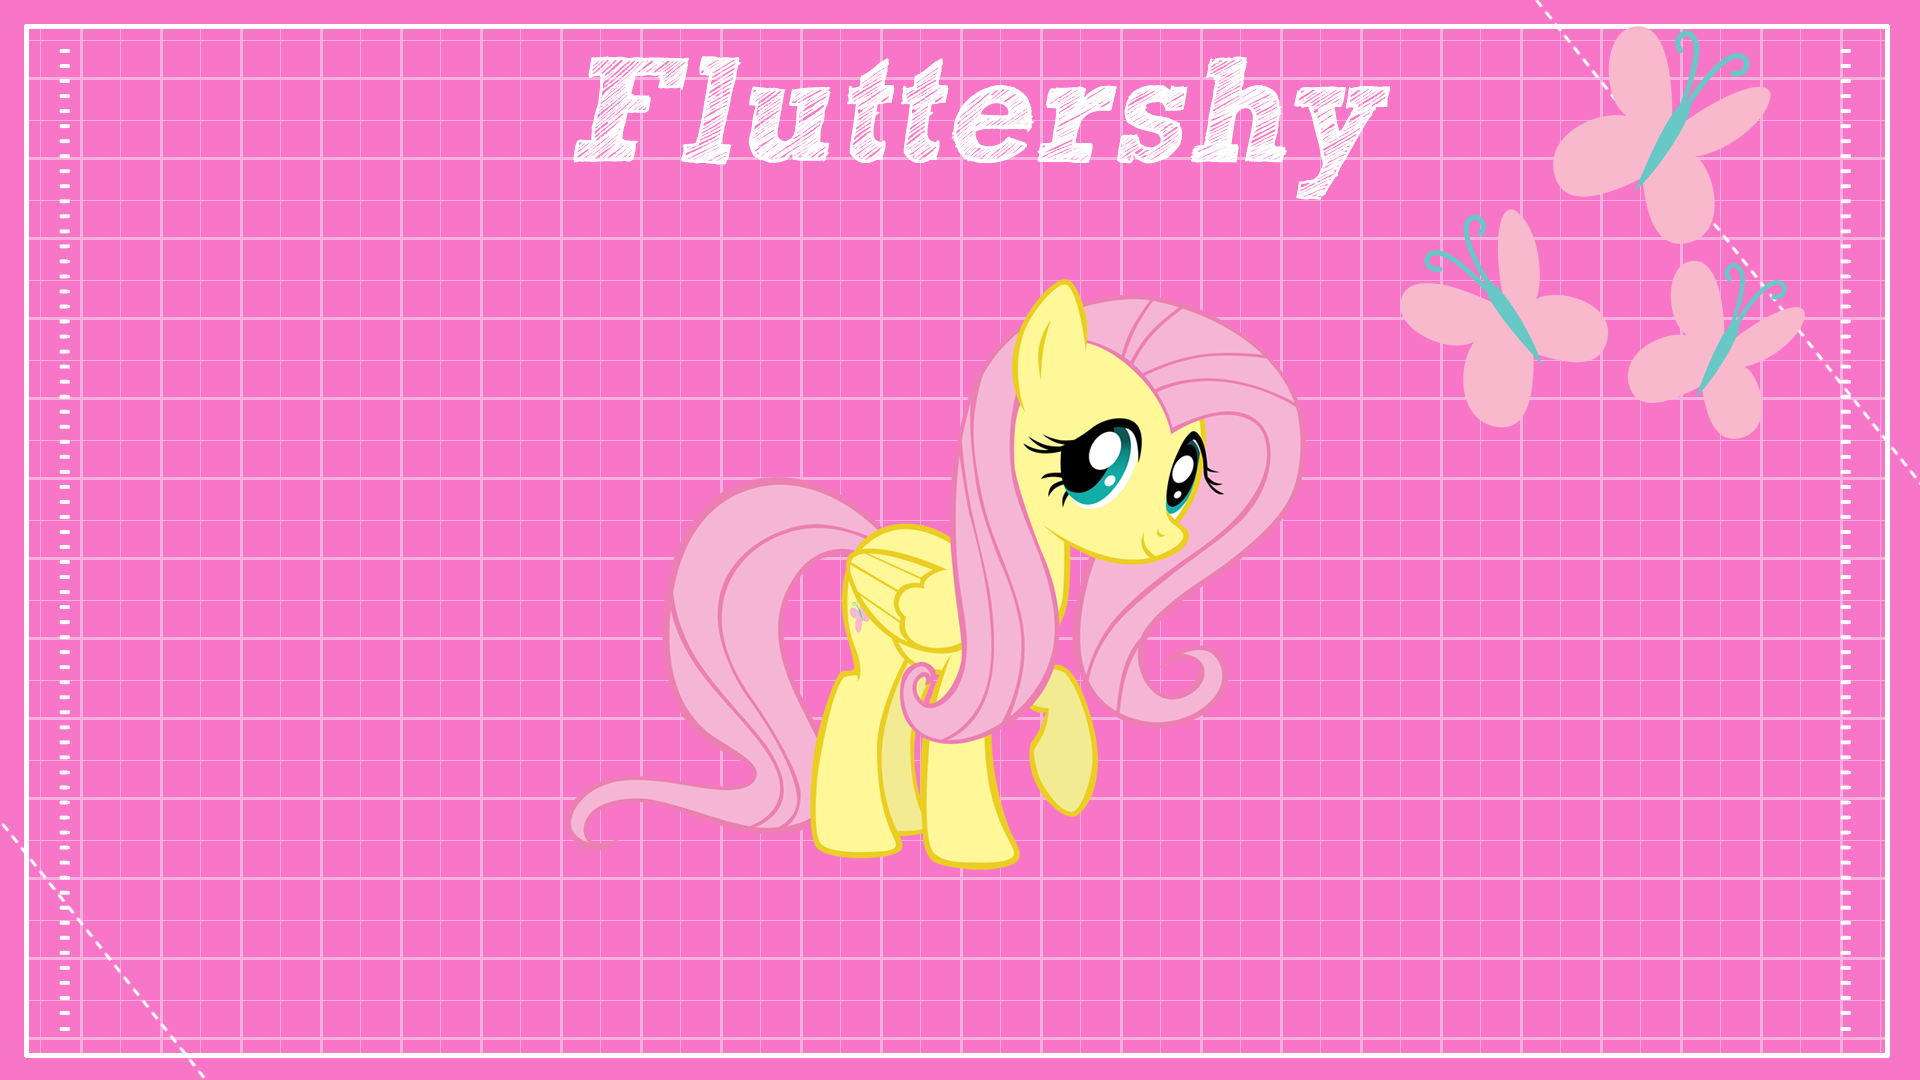 Fluttershy Design Clear by BlackGryph0n, ikonradx and Takua770